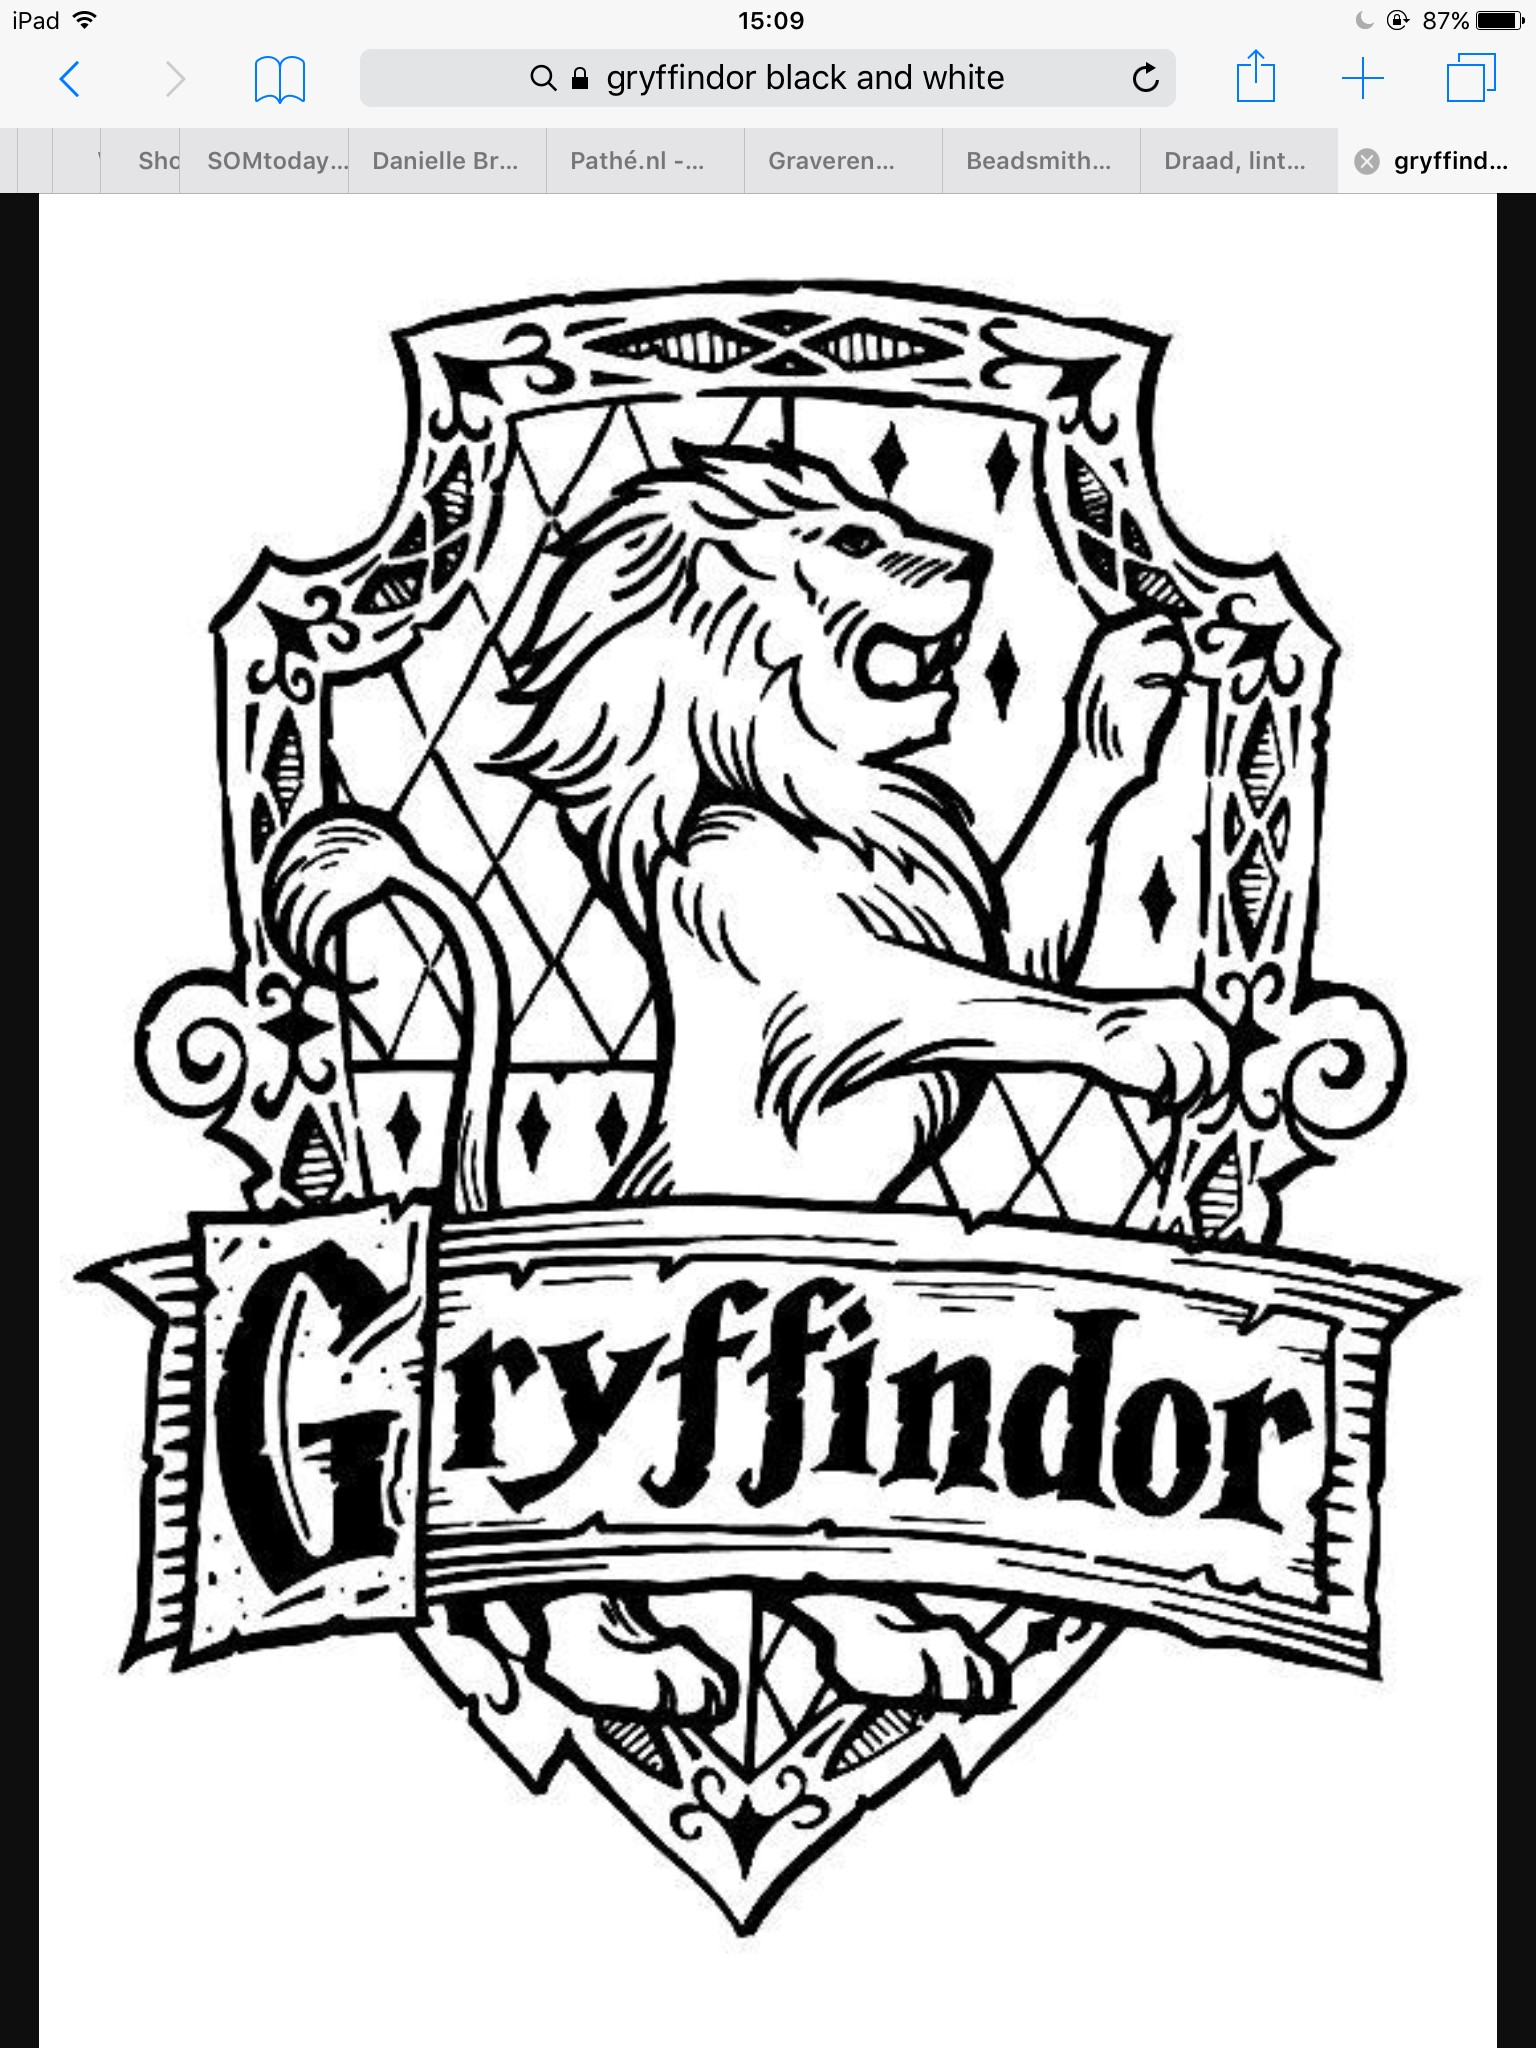 harry potter house coloring pages harry potter coloring pages hogwarts crest coloring home pages house coloring harry potter